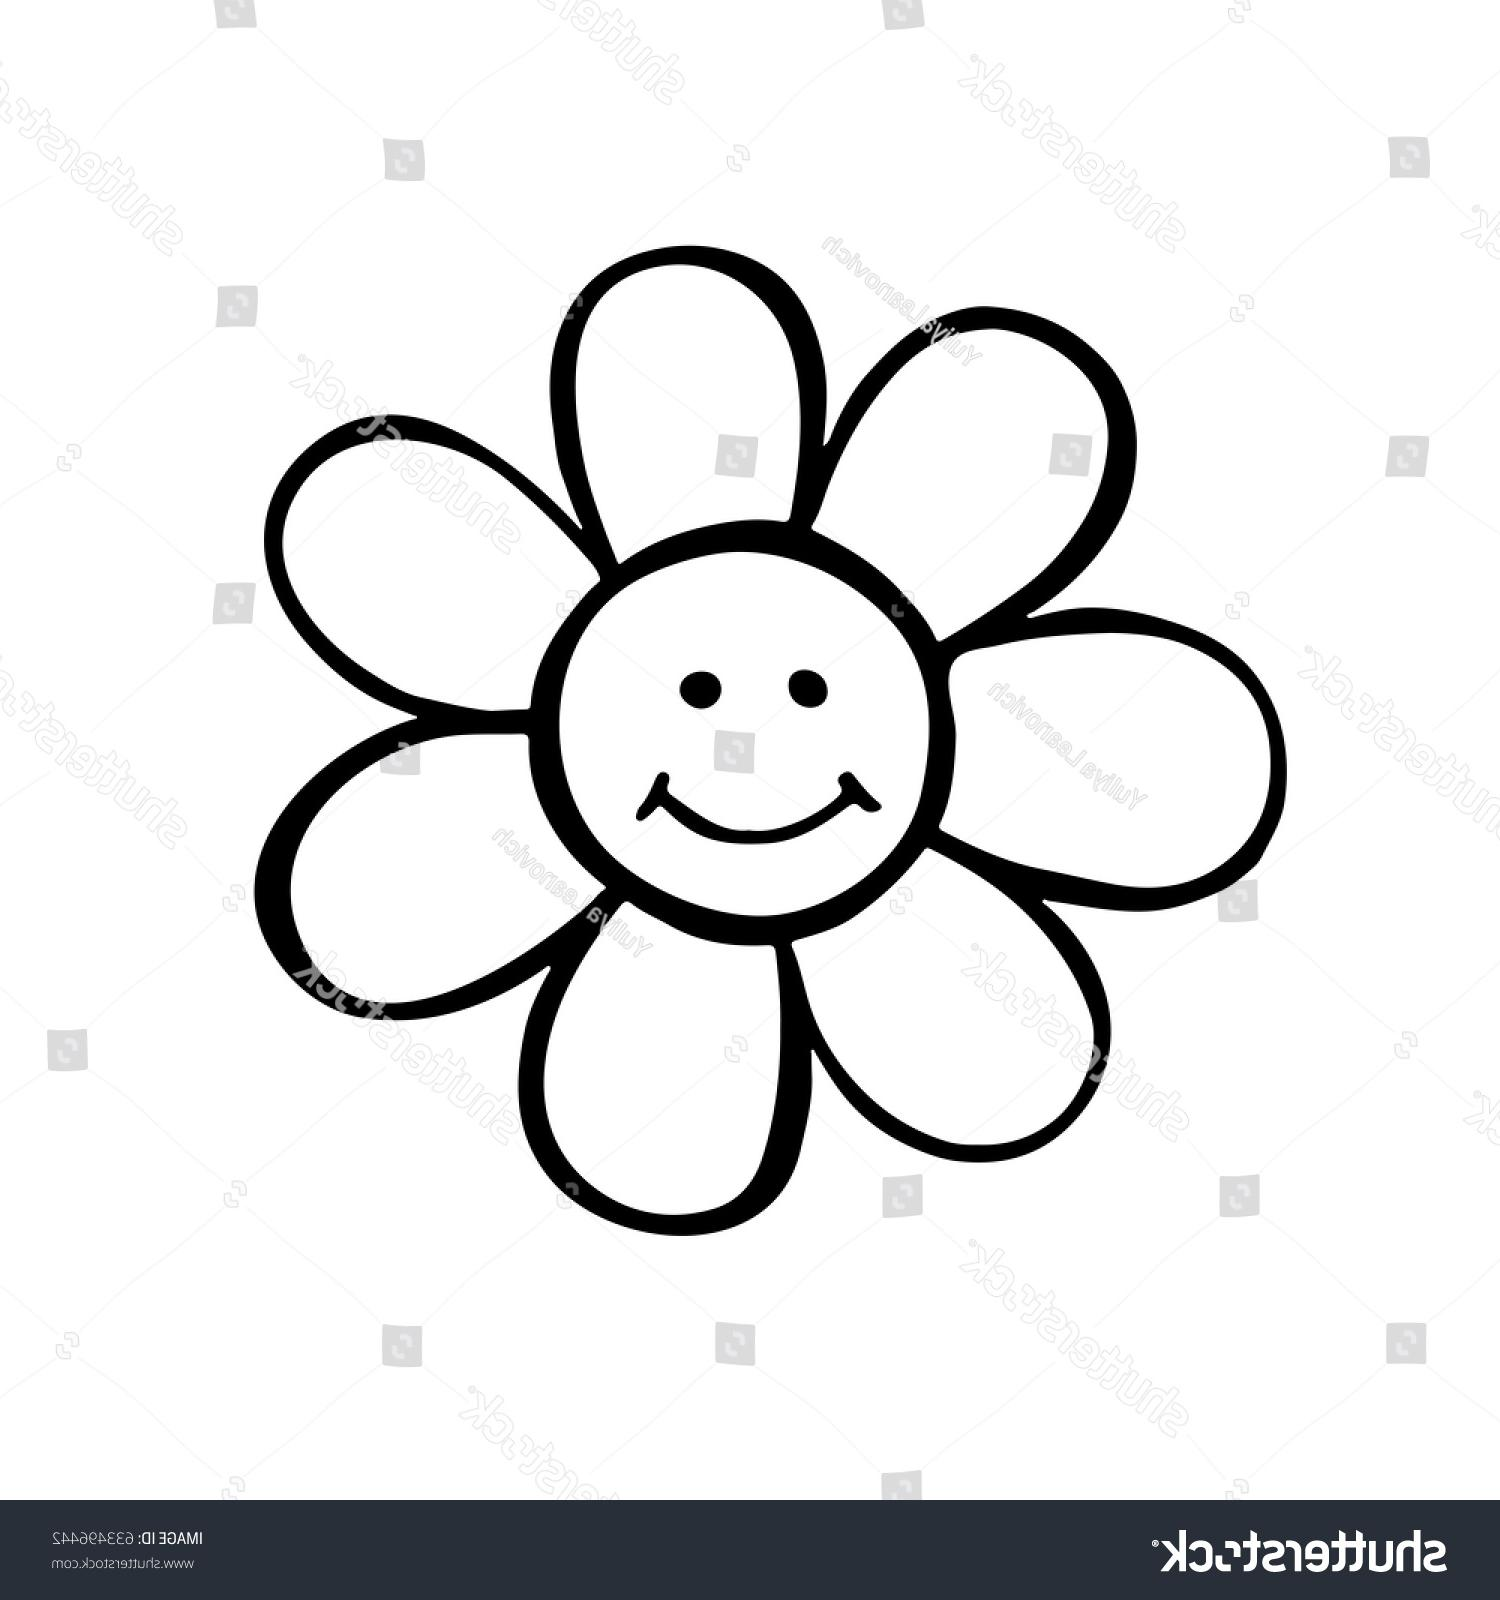 1500x1600 Top 10 Stock Vector Daisy Flower Hand Drawn Smiling Illustration